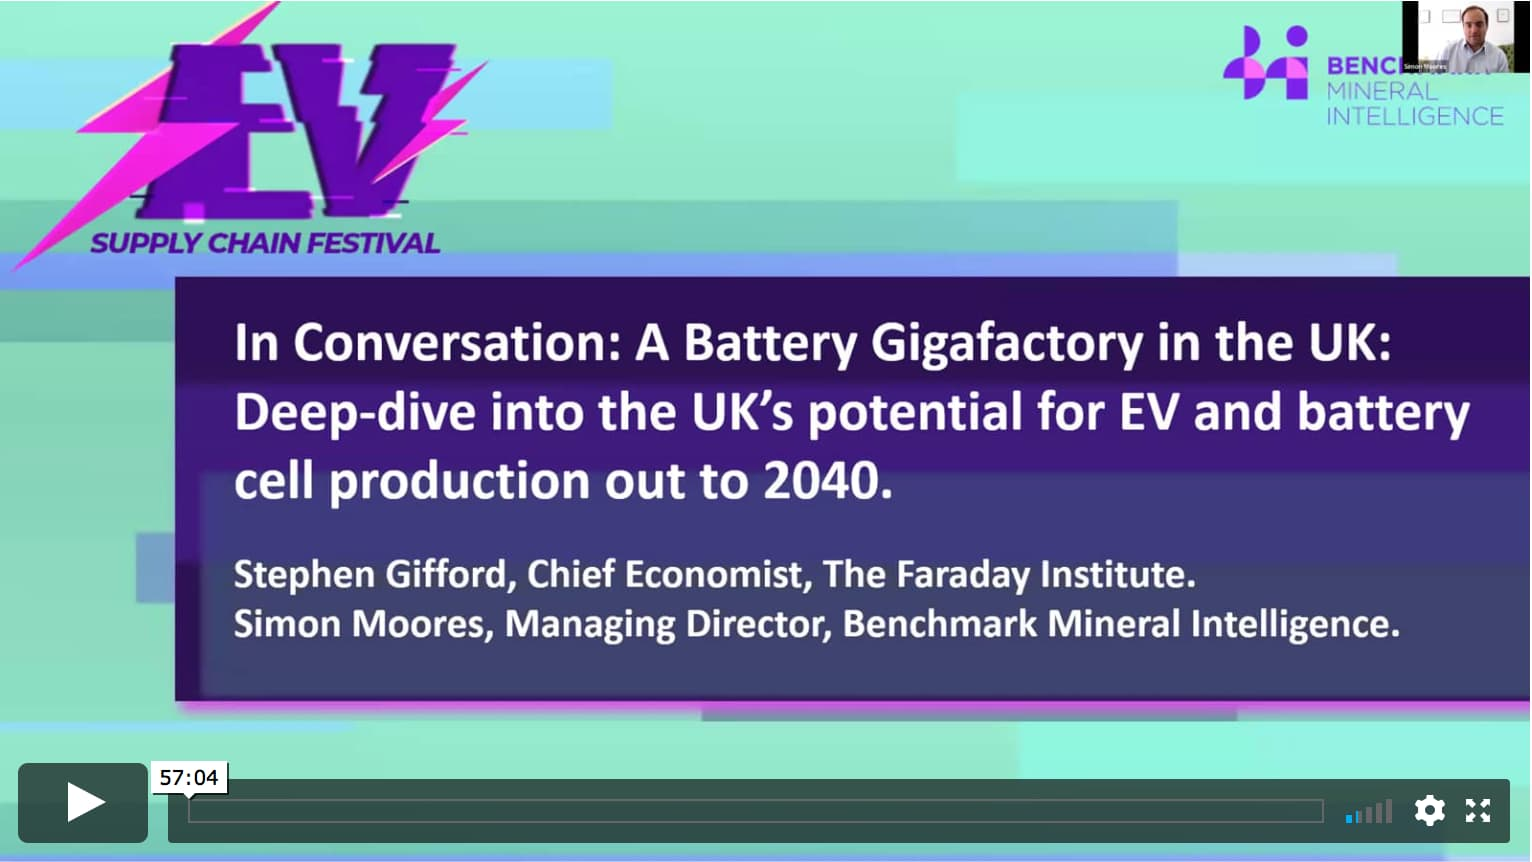 A BATTERY GIGAFACTORY IN THE UK: POTENTIAL FOR EV & BATTERY CELL PRODUCTION